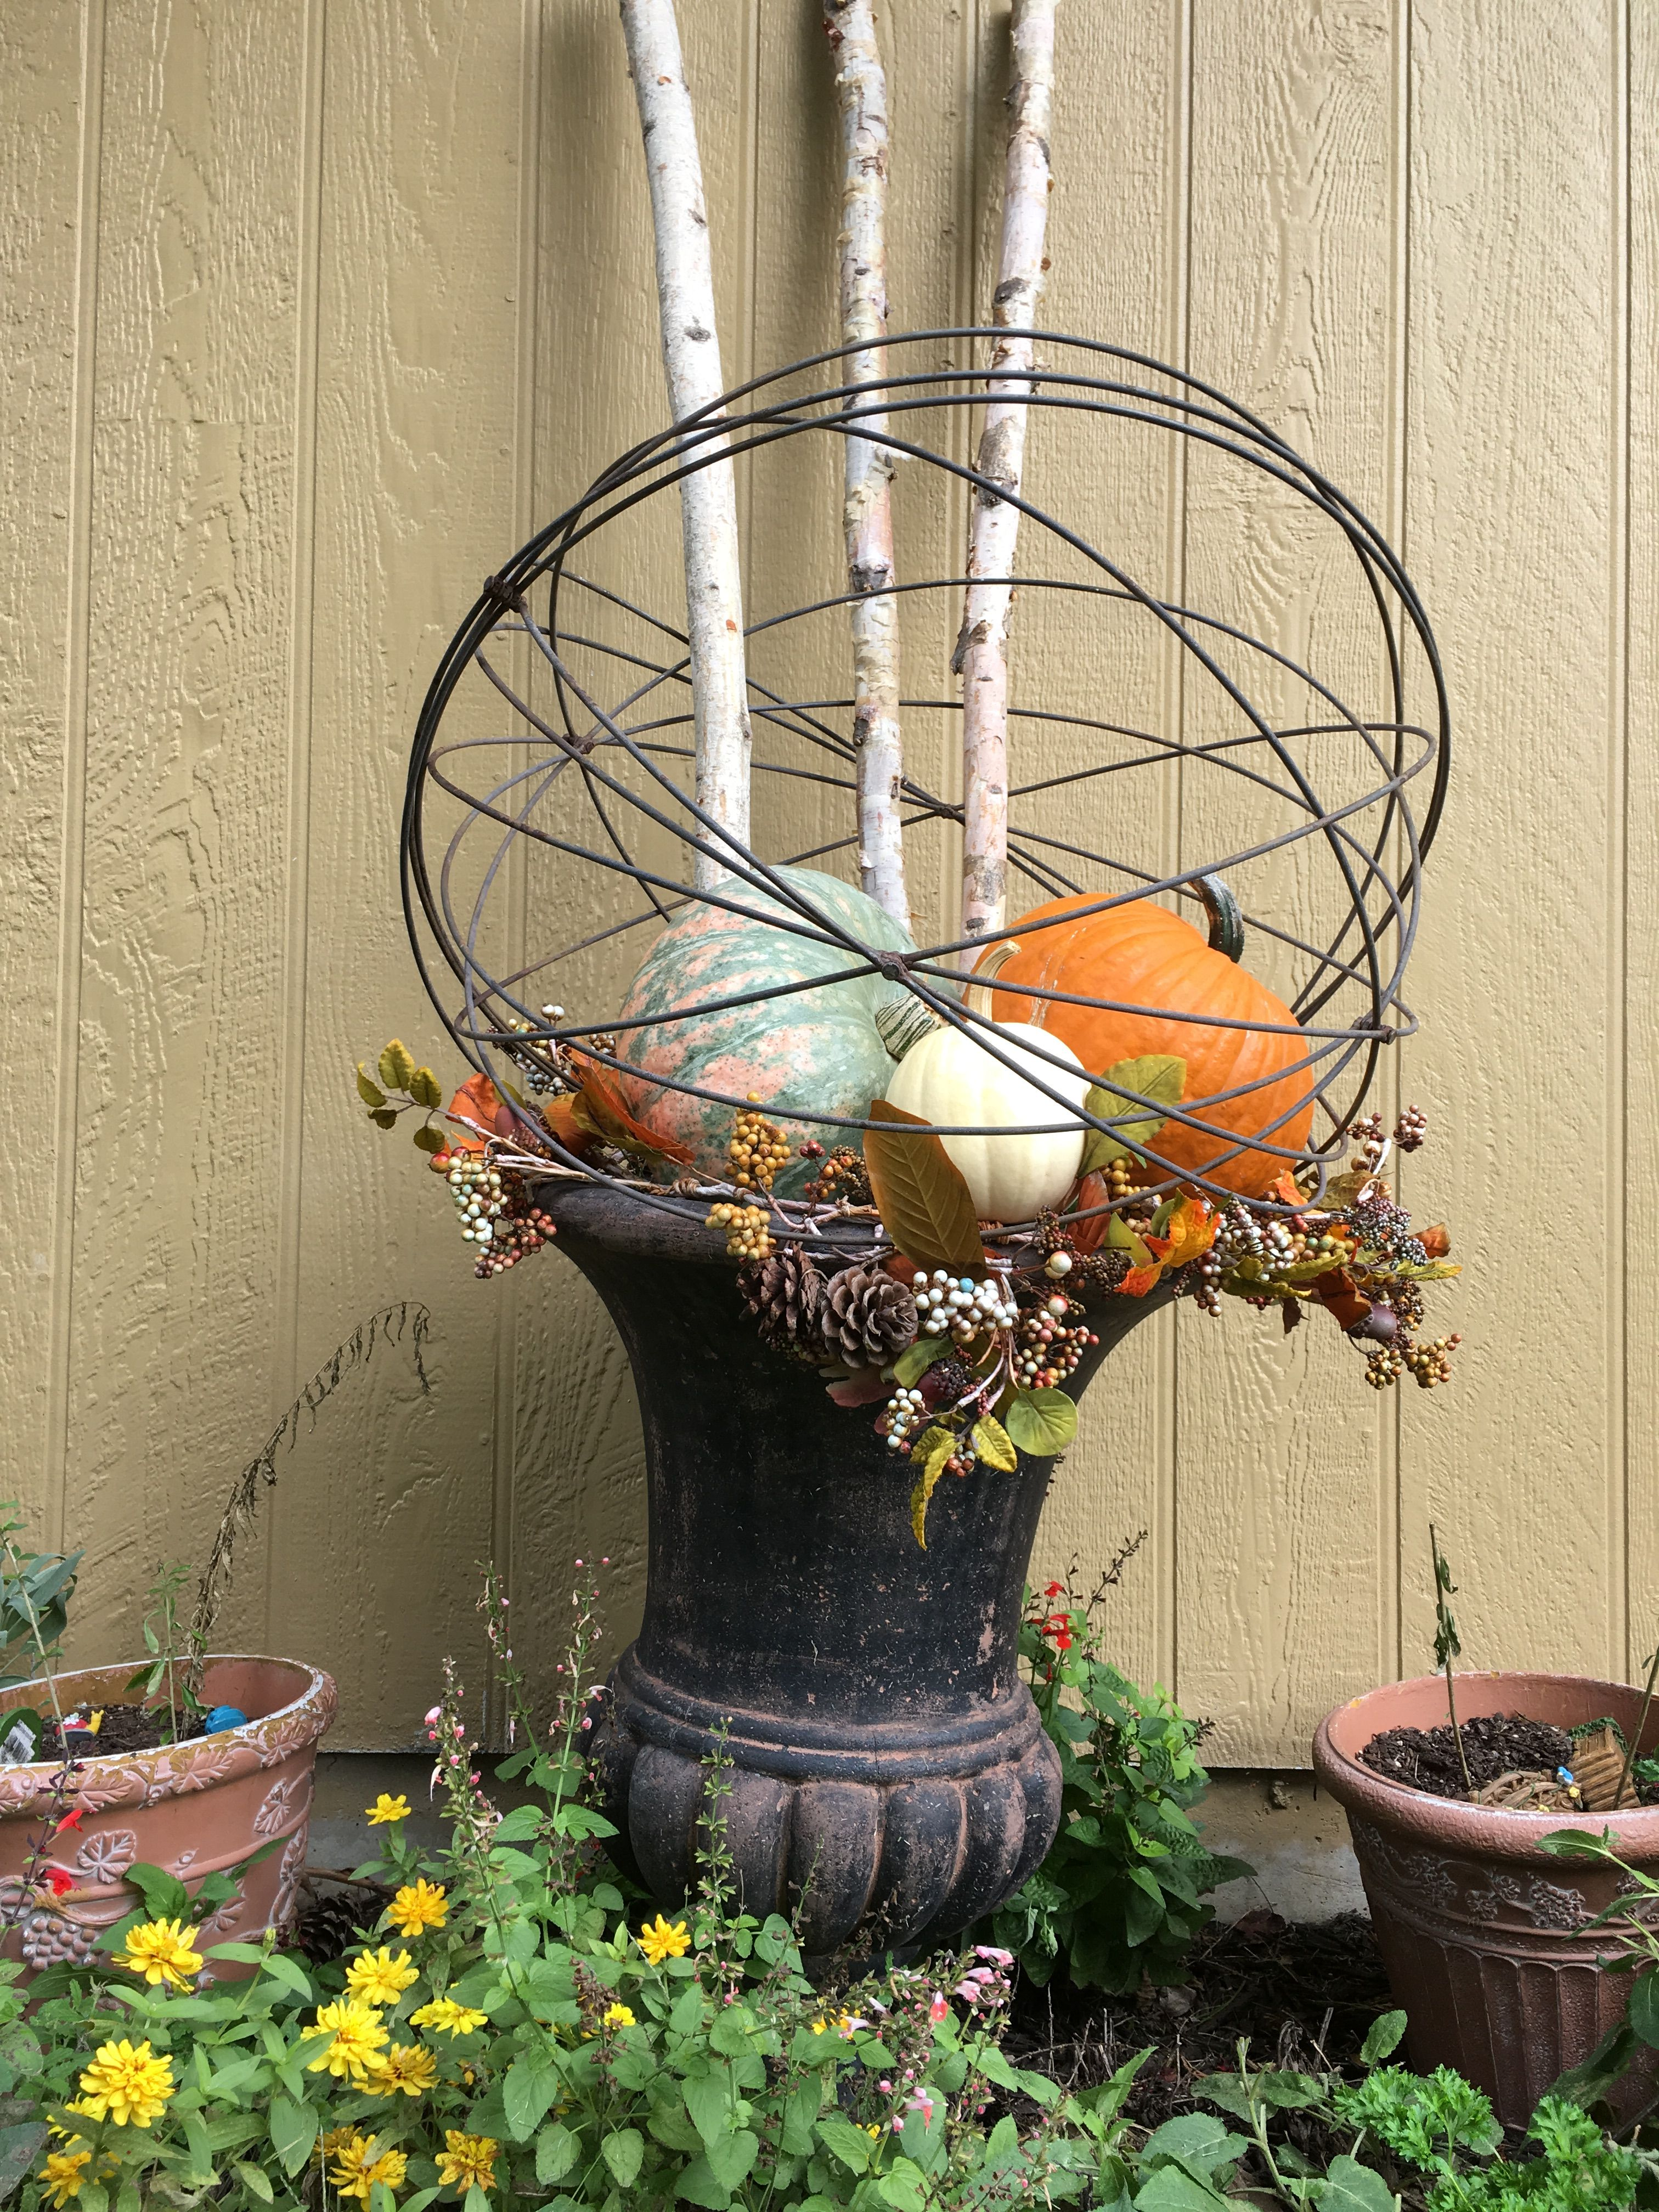 Wedding decorations table october 2018 Side yard   Fall  In Love  Pinterest  Falling in love Side